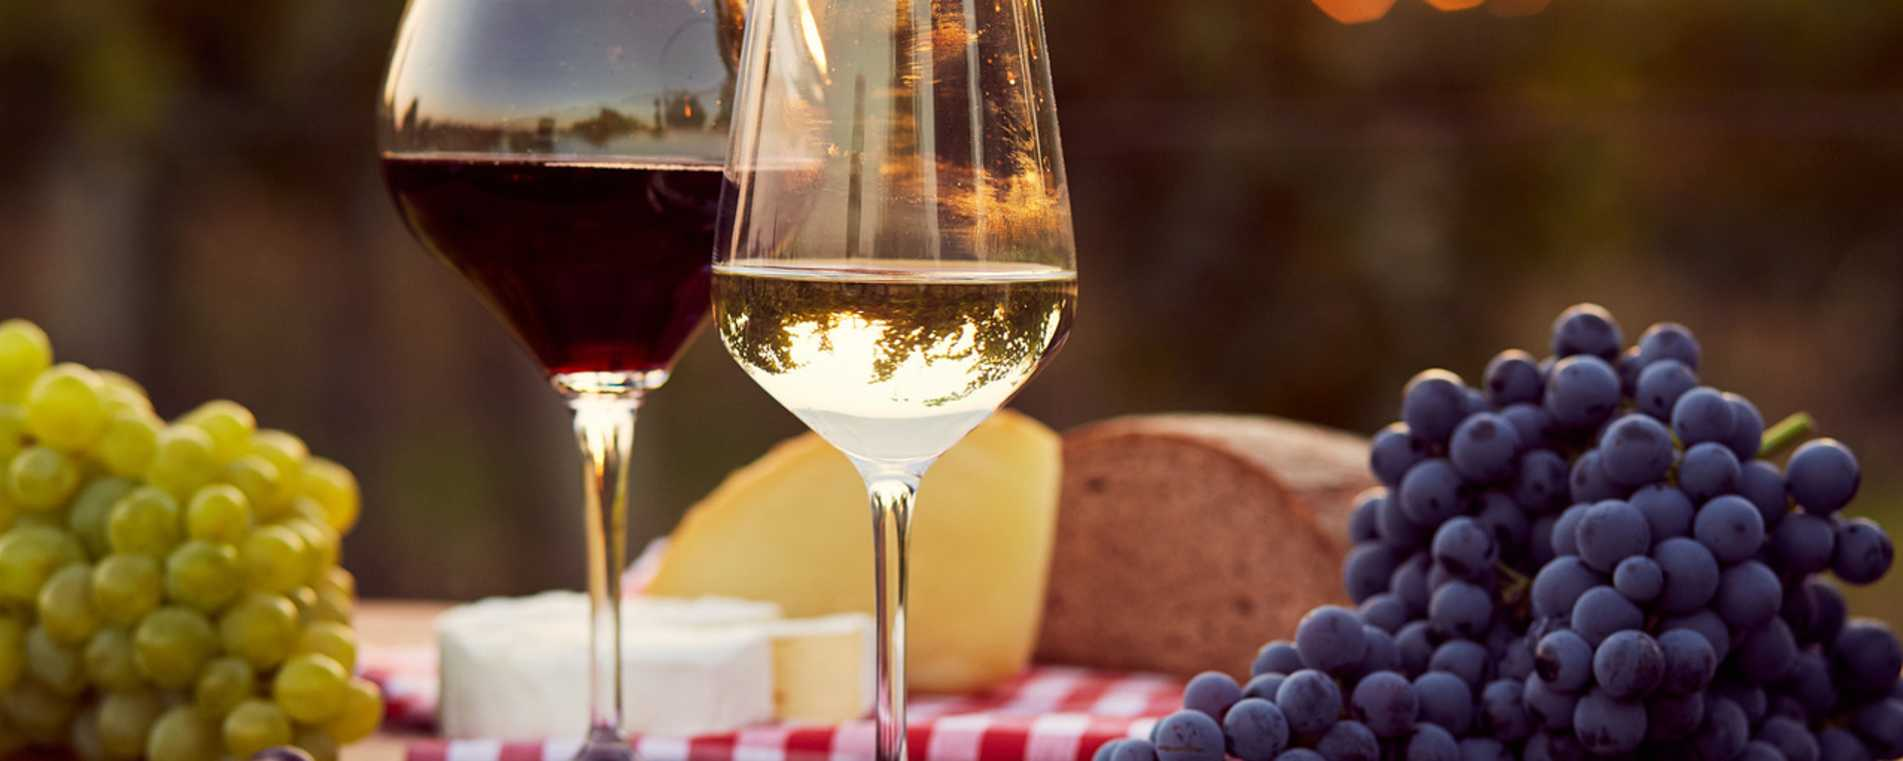 Wine - Destination Temecula Wine Tours and Experiences